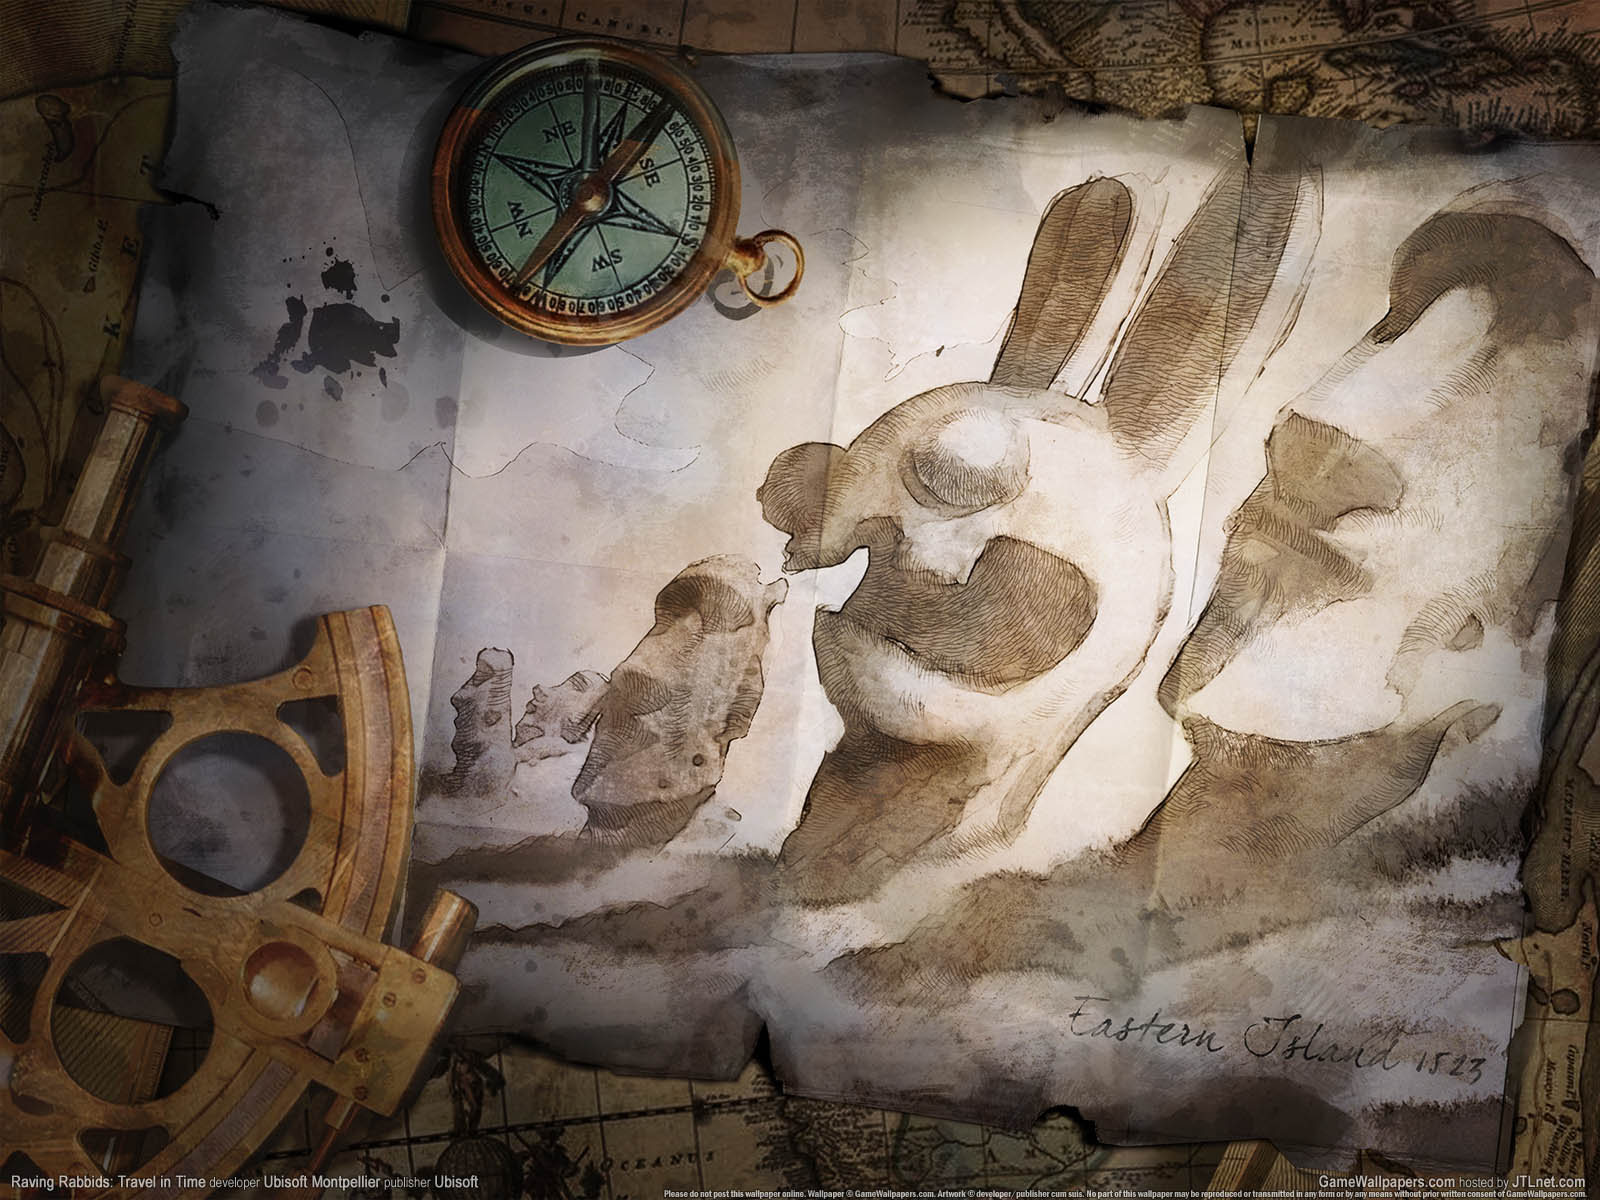 Raving Rabbids: Travel in Timeνmmer=03 achtergrond  1600x1200